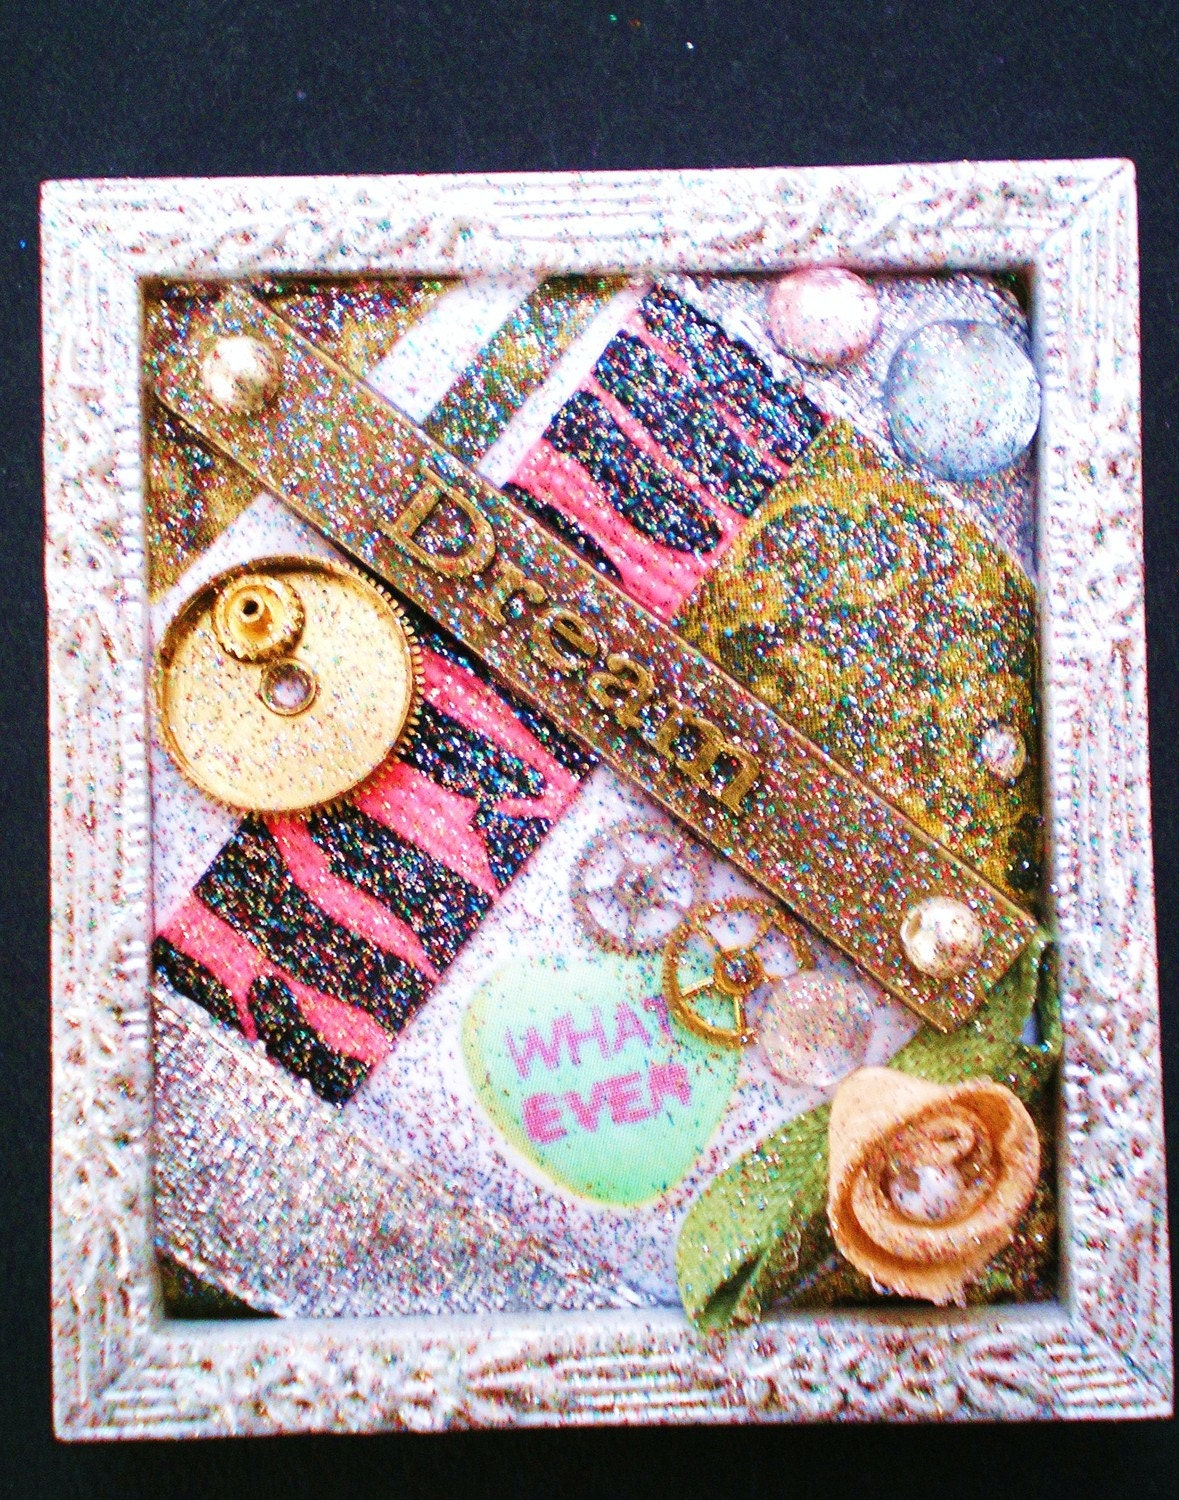 INSPIRATION - Tiny Collage Mixed Media OOAK Framed Signed Sarcastic Inspirational Message with Jewels Flower Heart Ribbon Watch Parts Beads